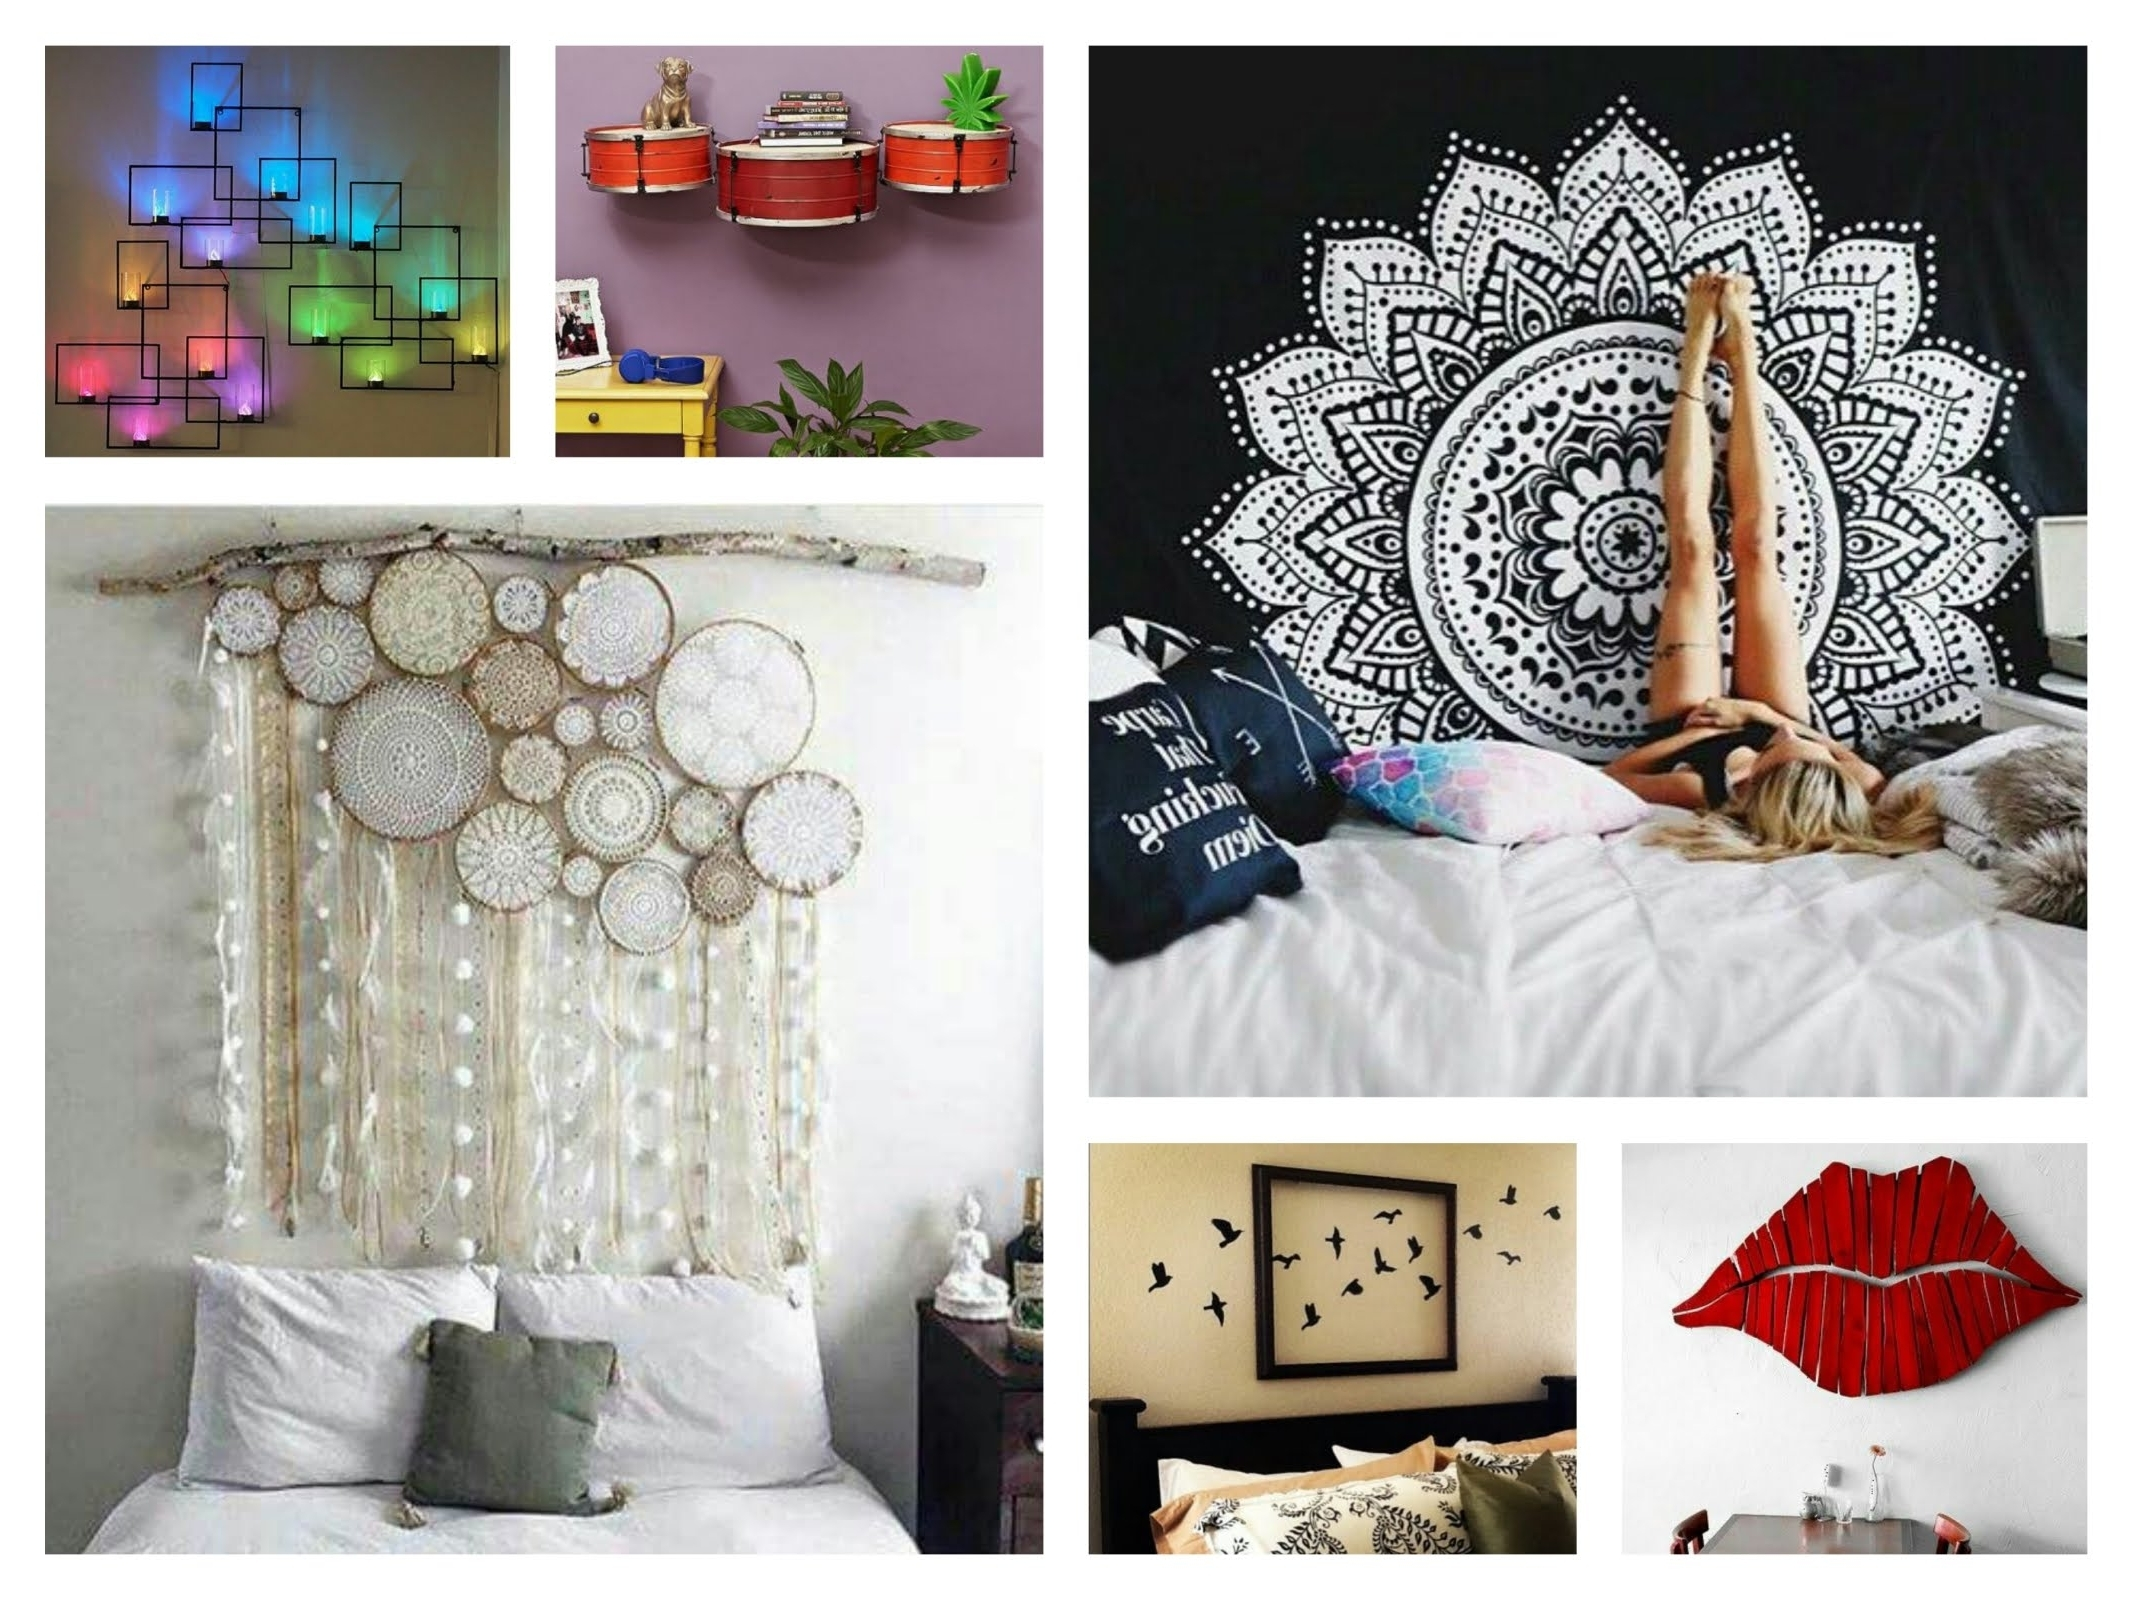 Wall Art Decors Intended For Fashionable Creative Wall Decor Ideas – Diy Room Decorations – Youtube (View 5 of 15)